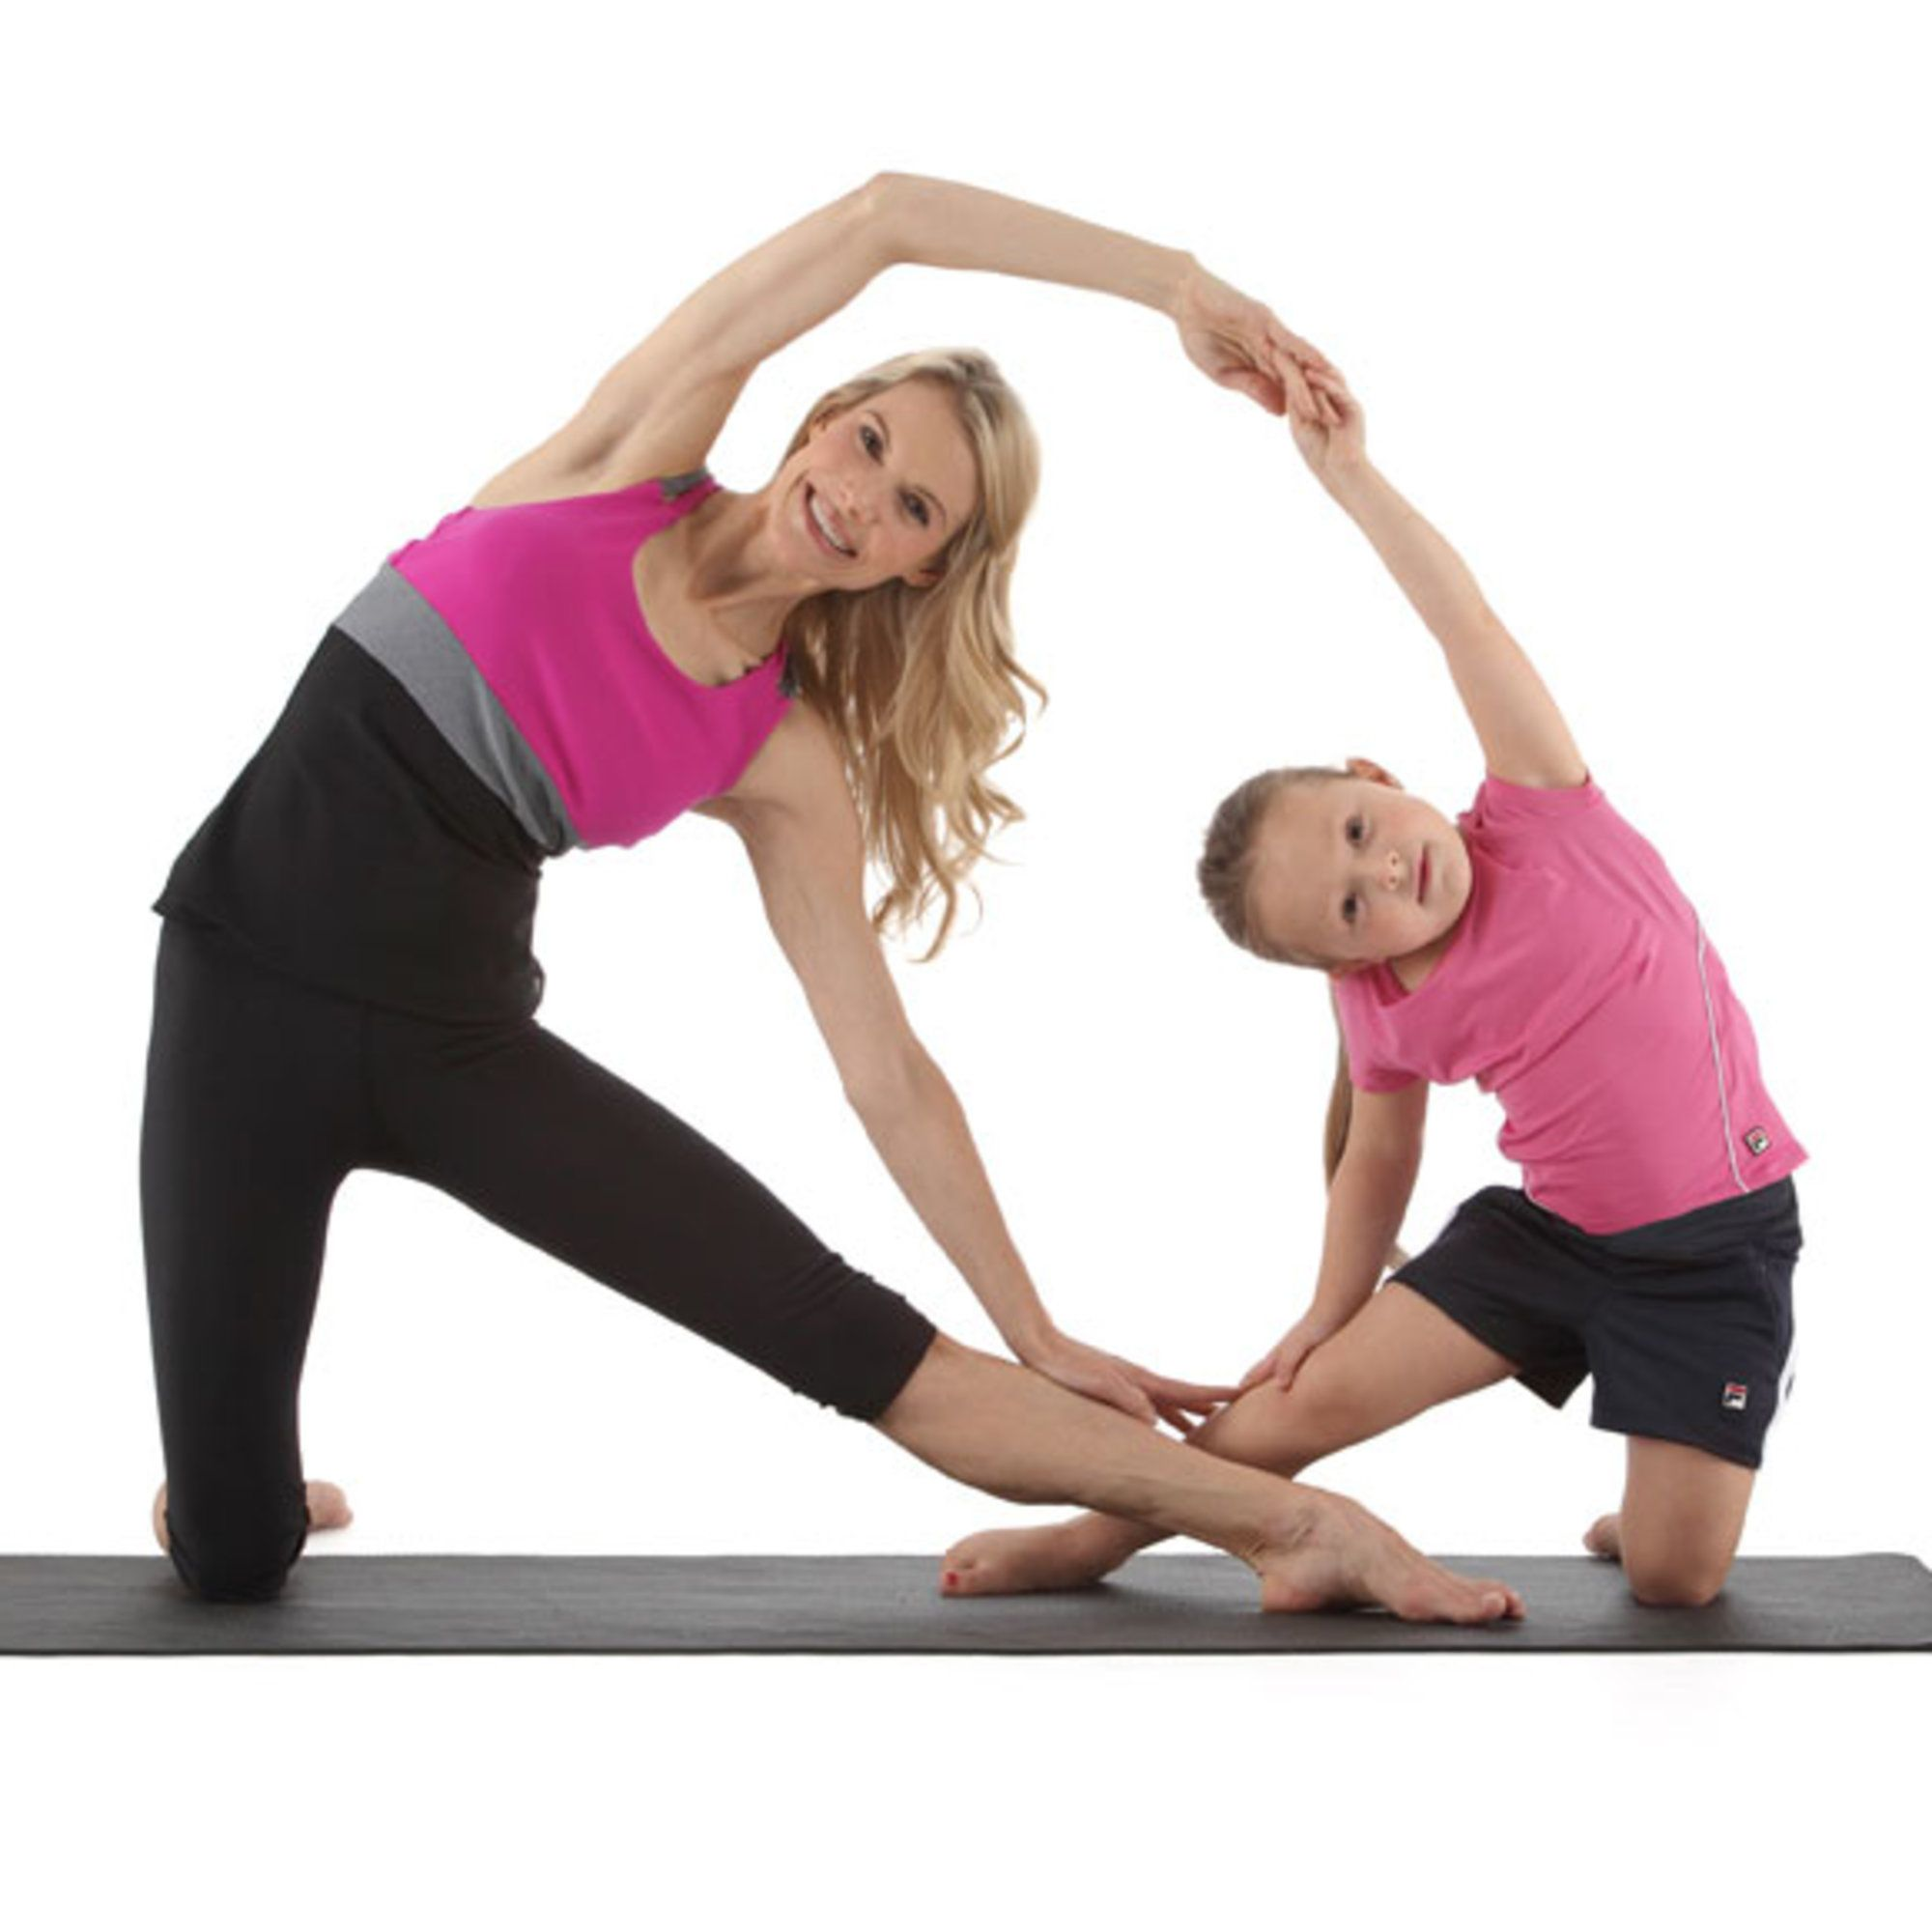 Partner Gate These Yoga Poses Pack A Two In One Punch They Help You Sneak Workout And Instill Love Of Exercise Your Child